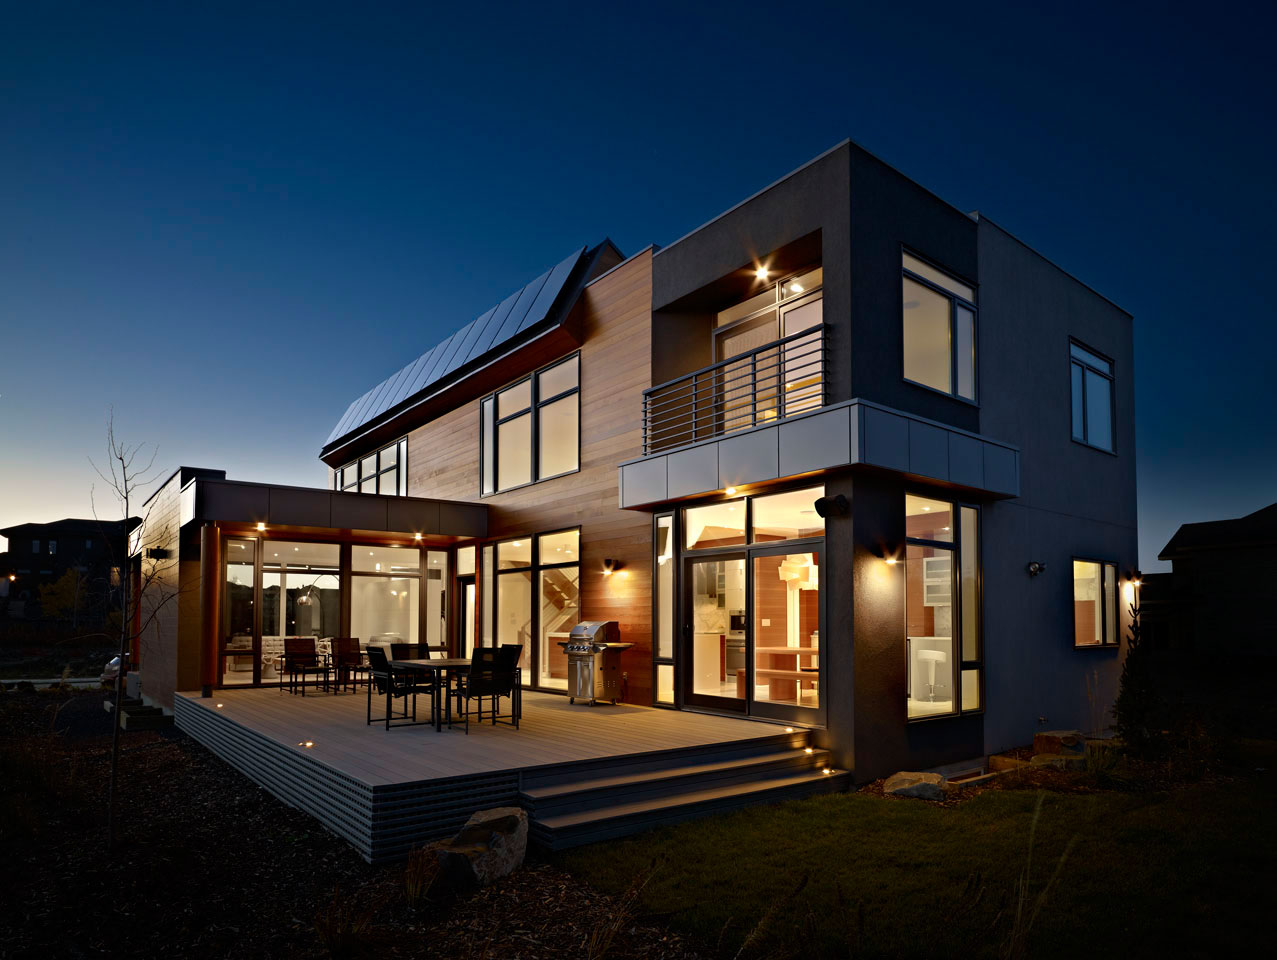 How Wealthy Are Residential Solar Customers? | PowerScout